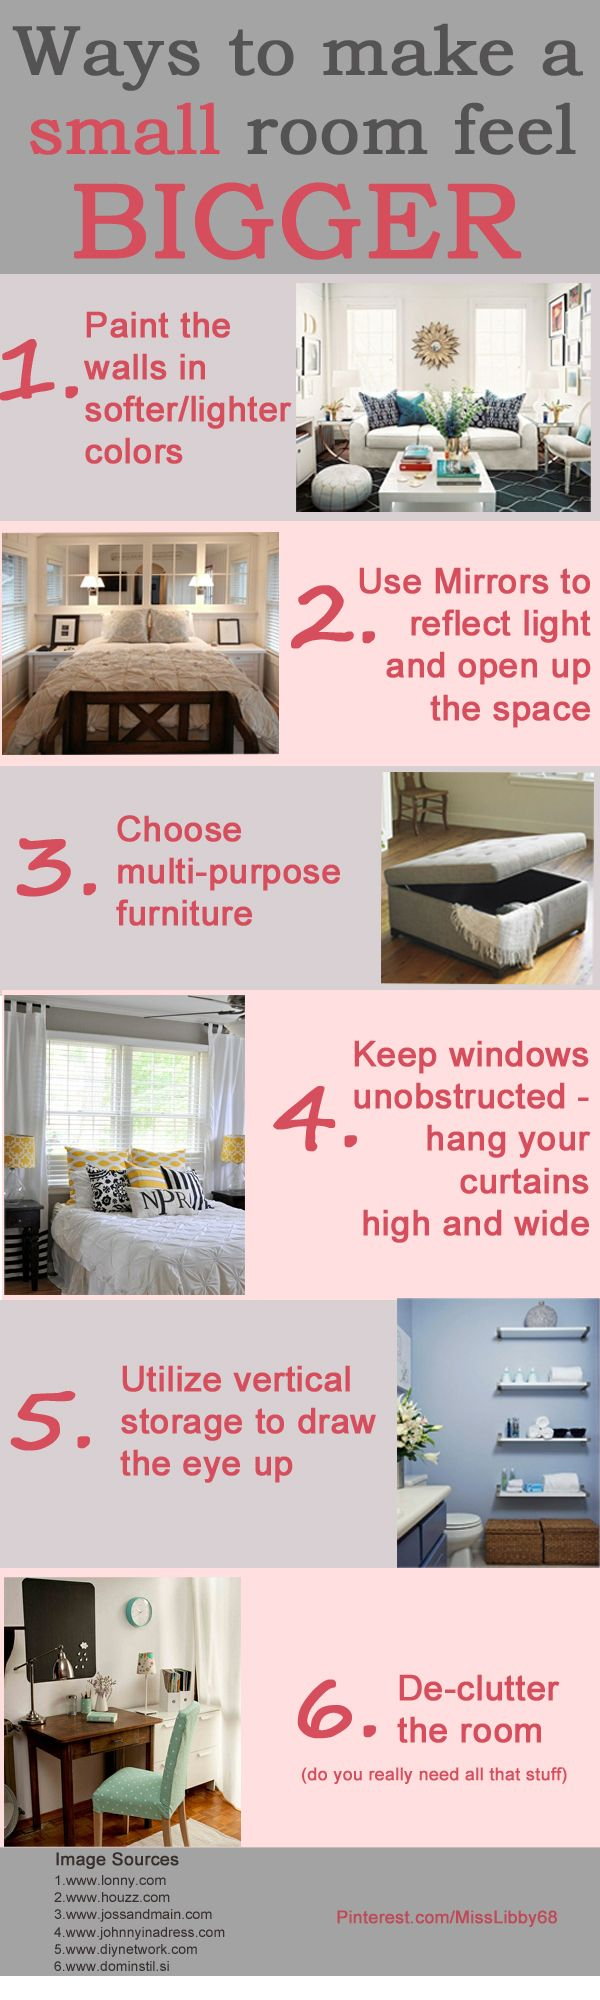 ways to make a small room feel bigger smallspaces cleverideas infographic - Bedroom Furniture Small Rooms